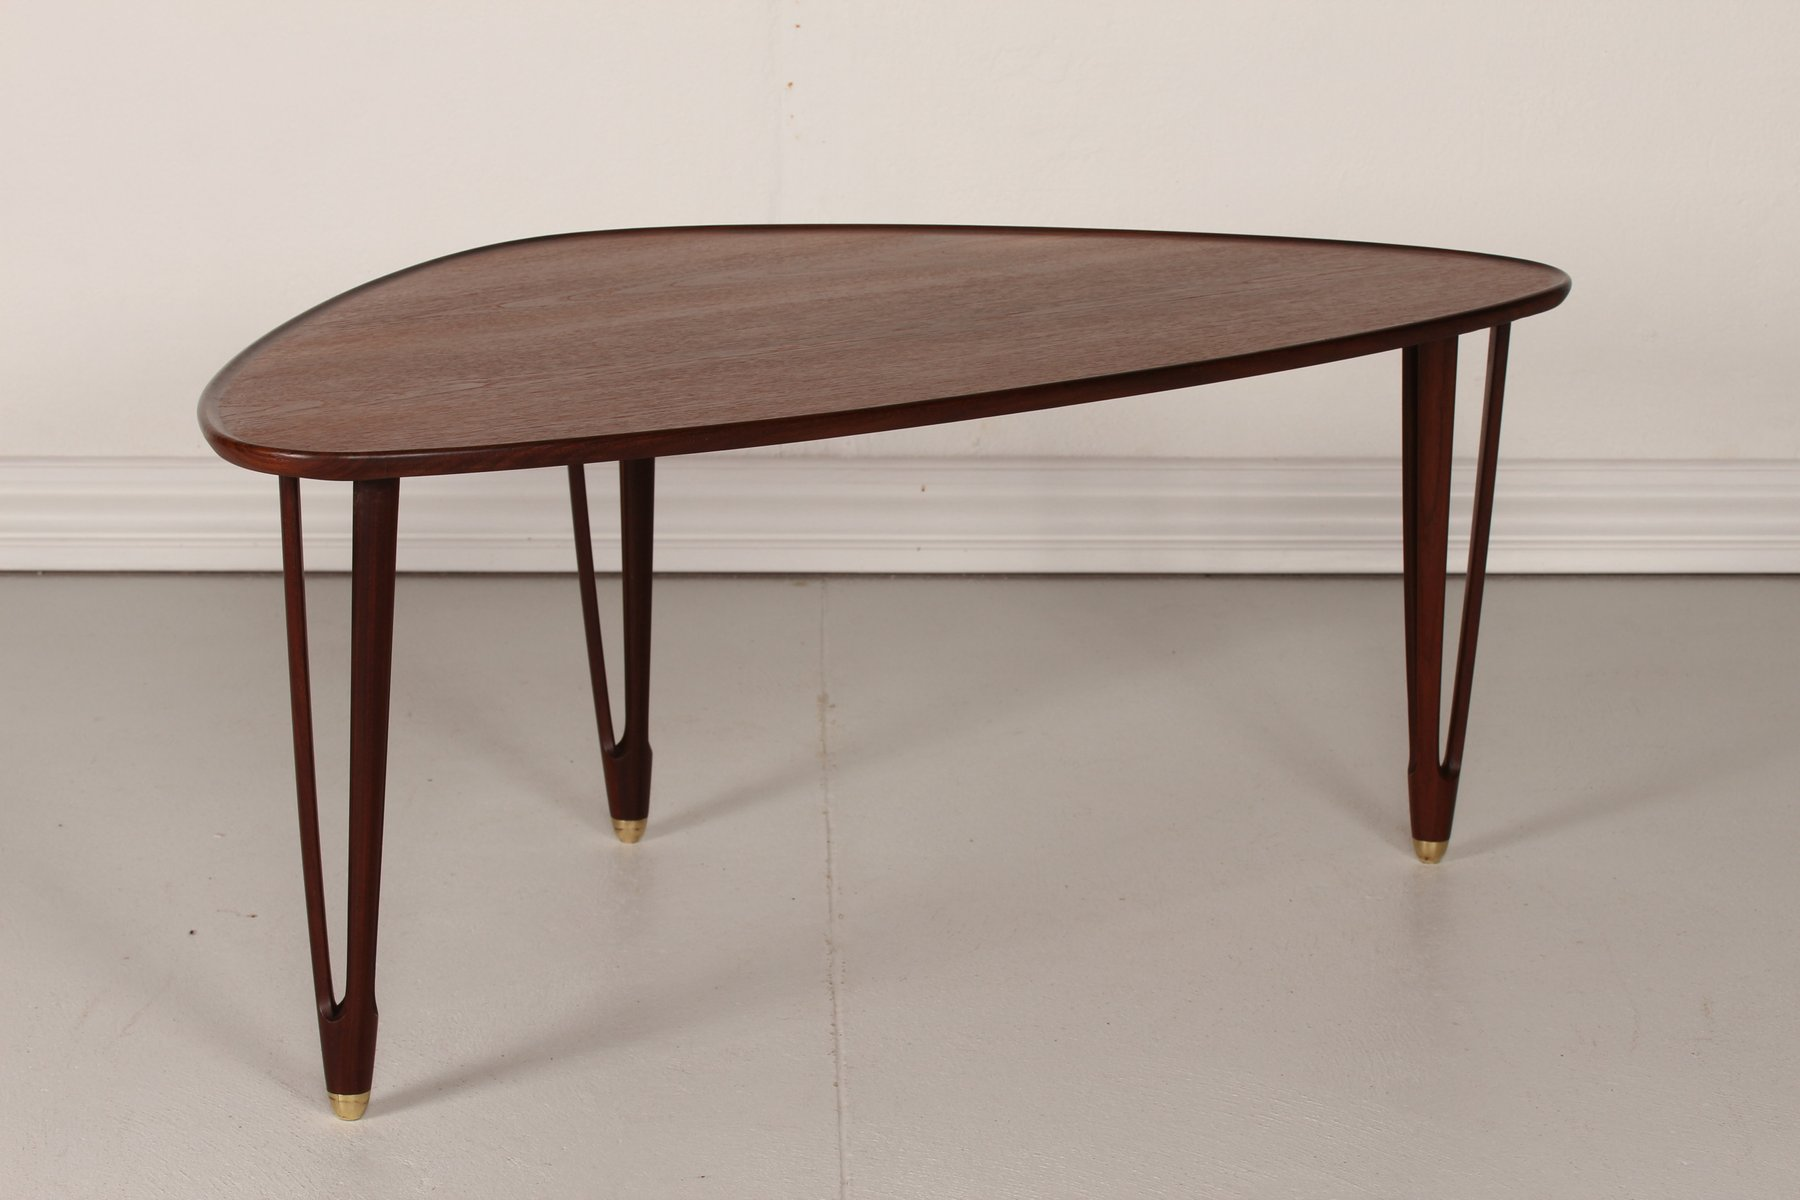 Vintage Danish Triangular Coffee Table in Teak 1950s for sale at